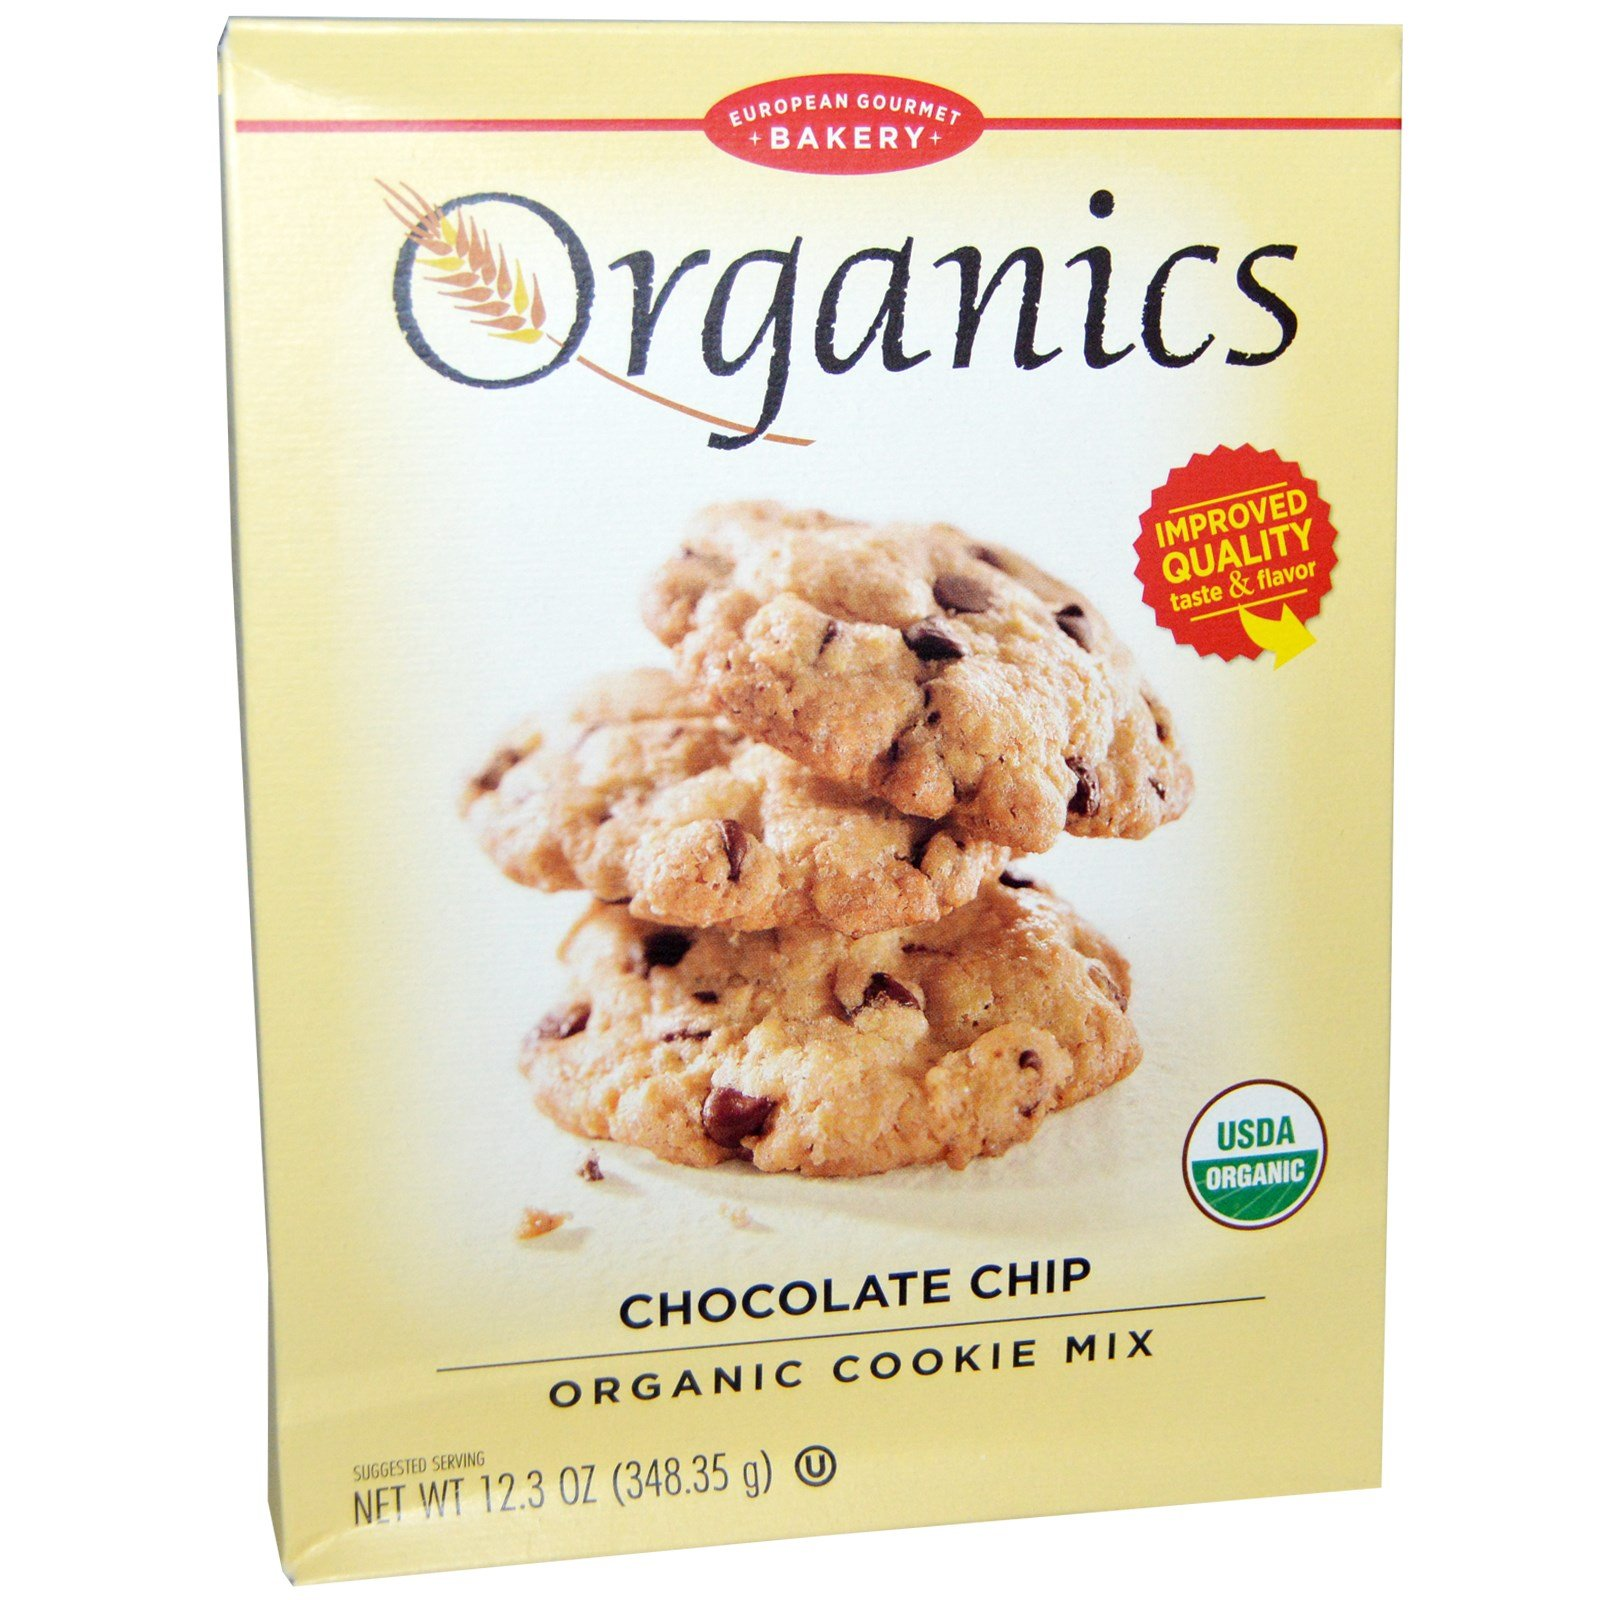 European Gourmet Bakery, Organics, Organic Cookie Mix, Chocolate Chip, 12.3 oz (348.35 g) - 2PC